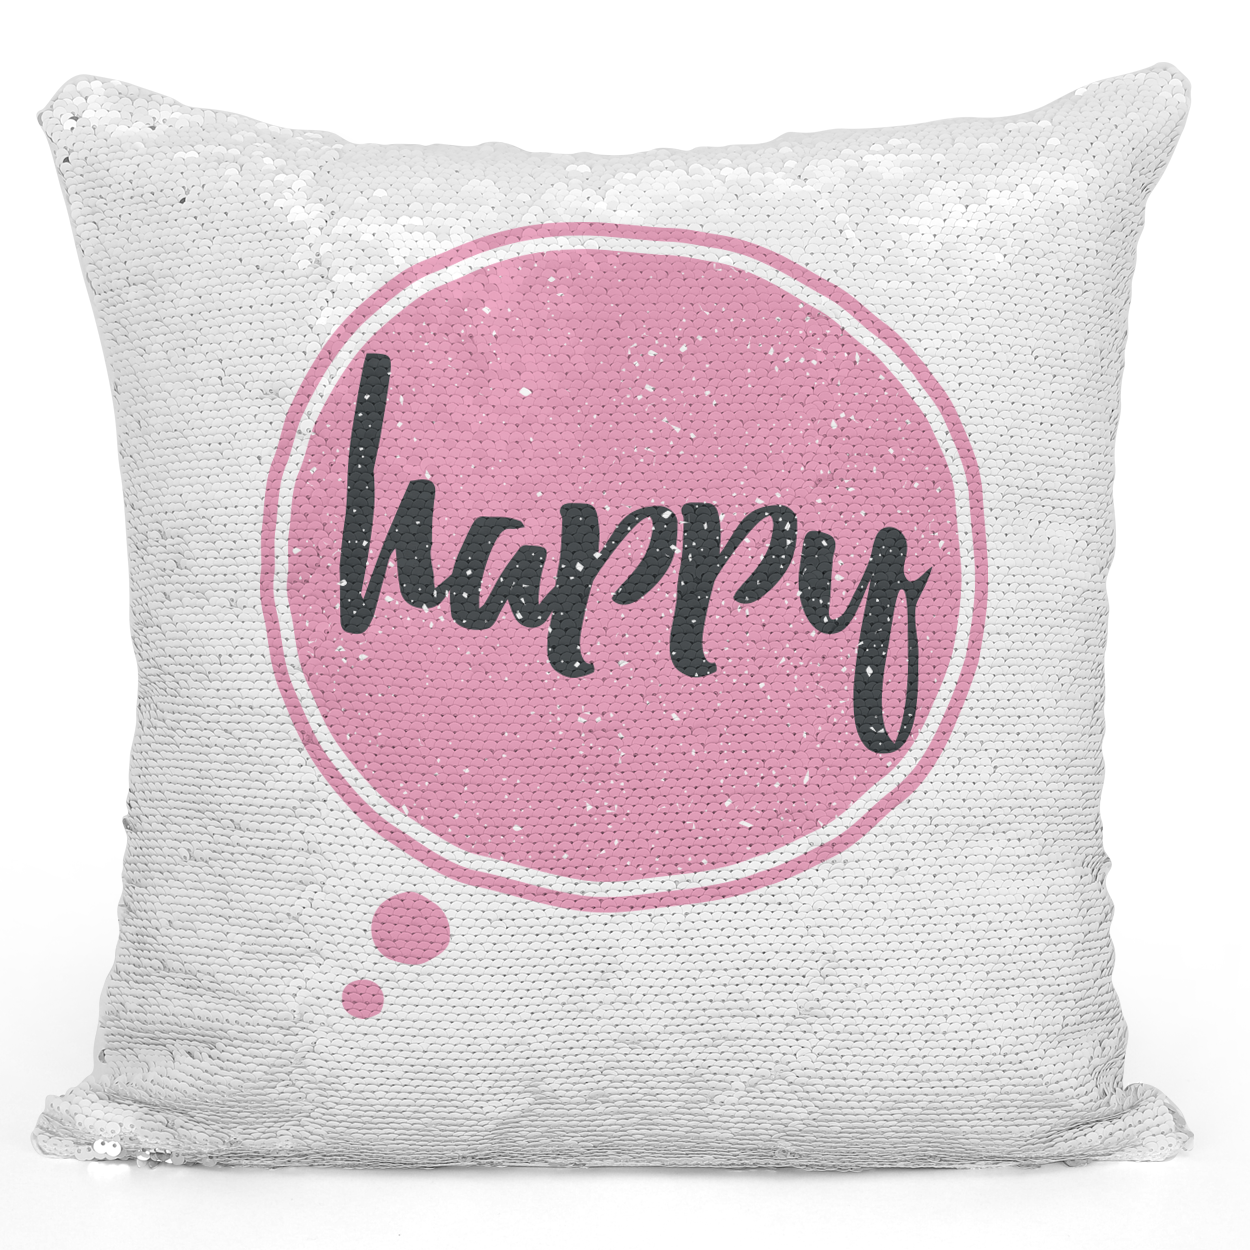 Sequin Pillow Magic Mermaid Throw Pillow Happy Pink Girly Pillow - Pure White Printed 16 x 16 inch Square Home Decor Couch Pillow Loud Universe